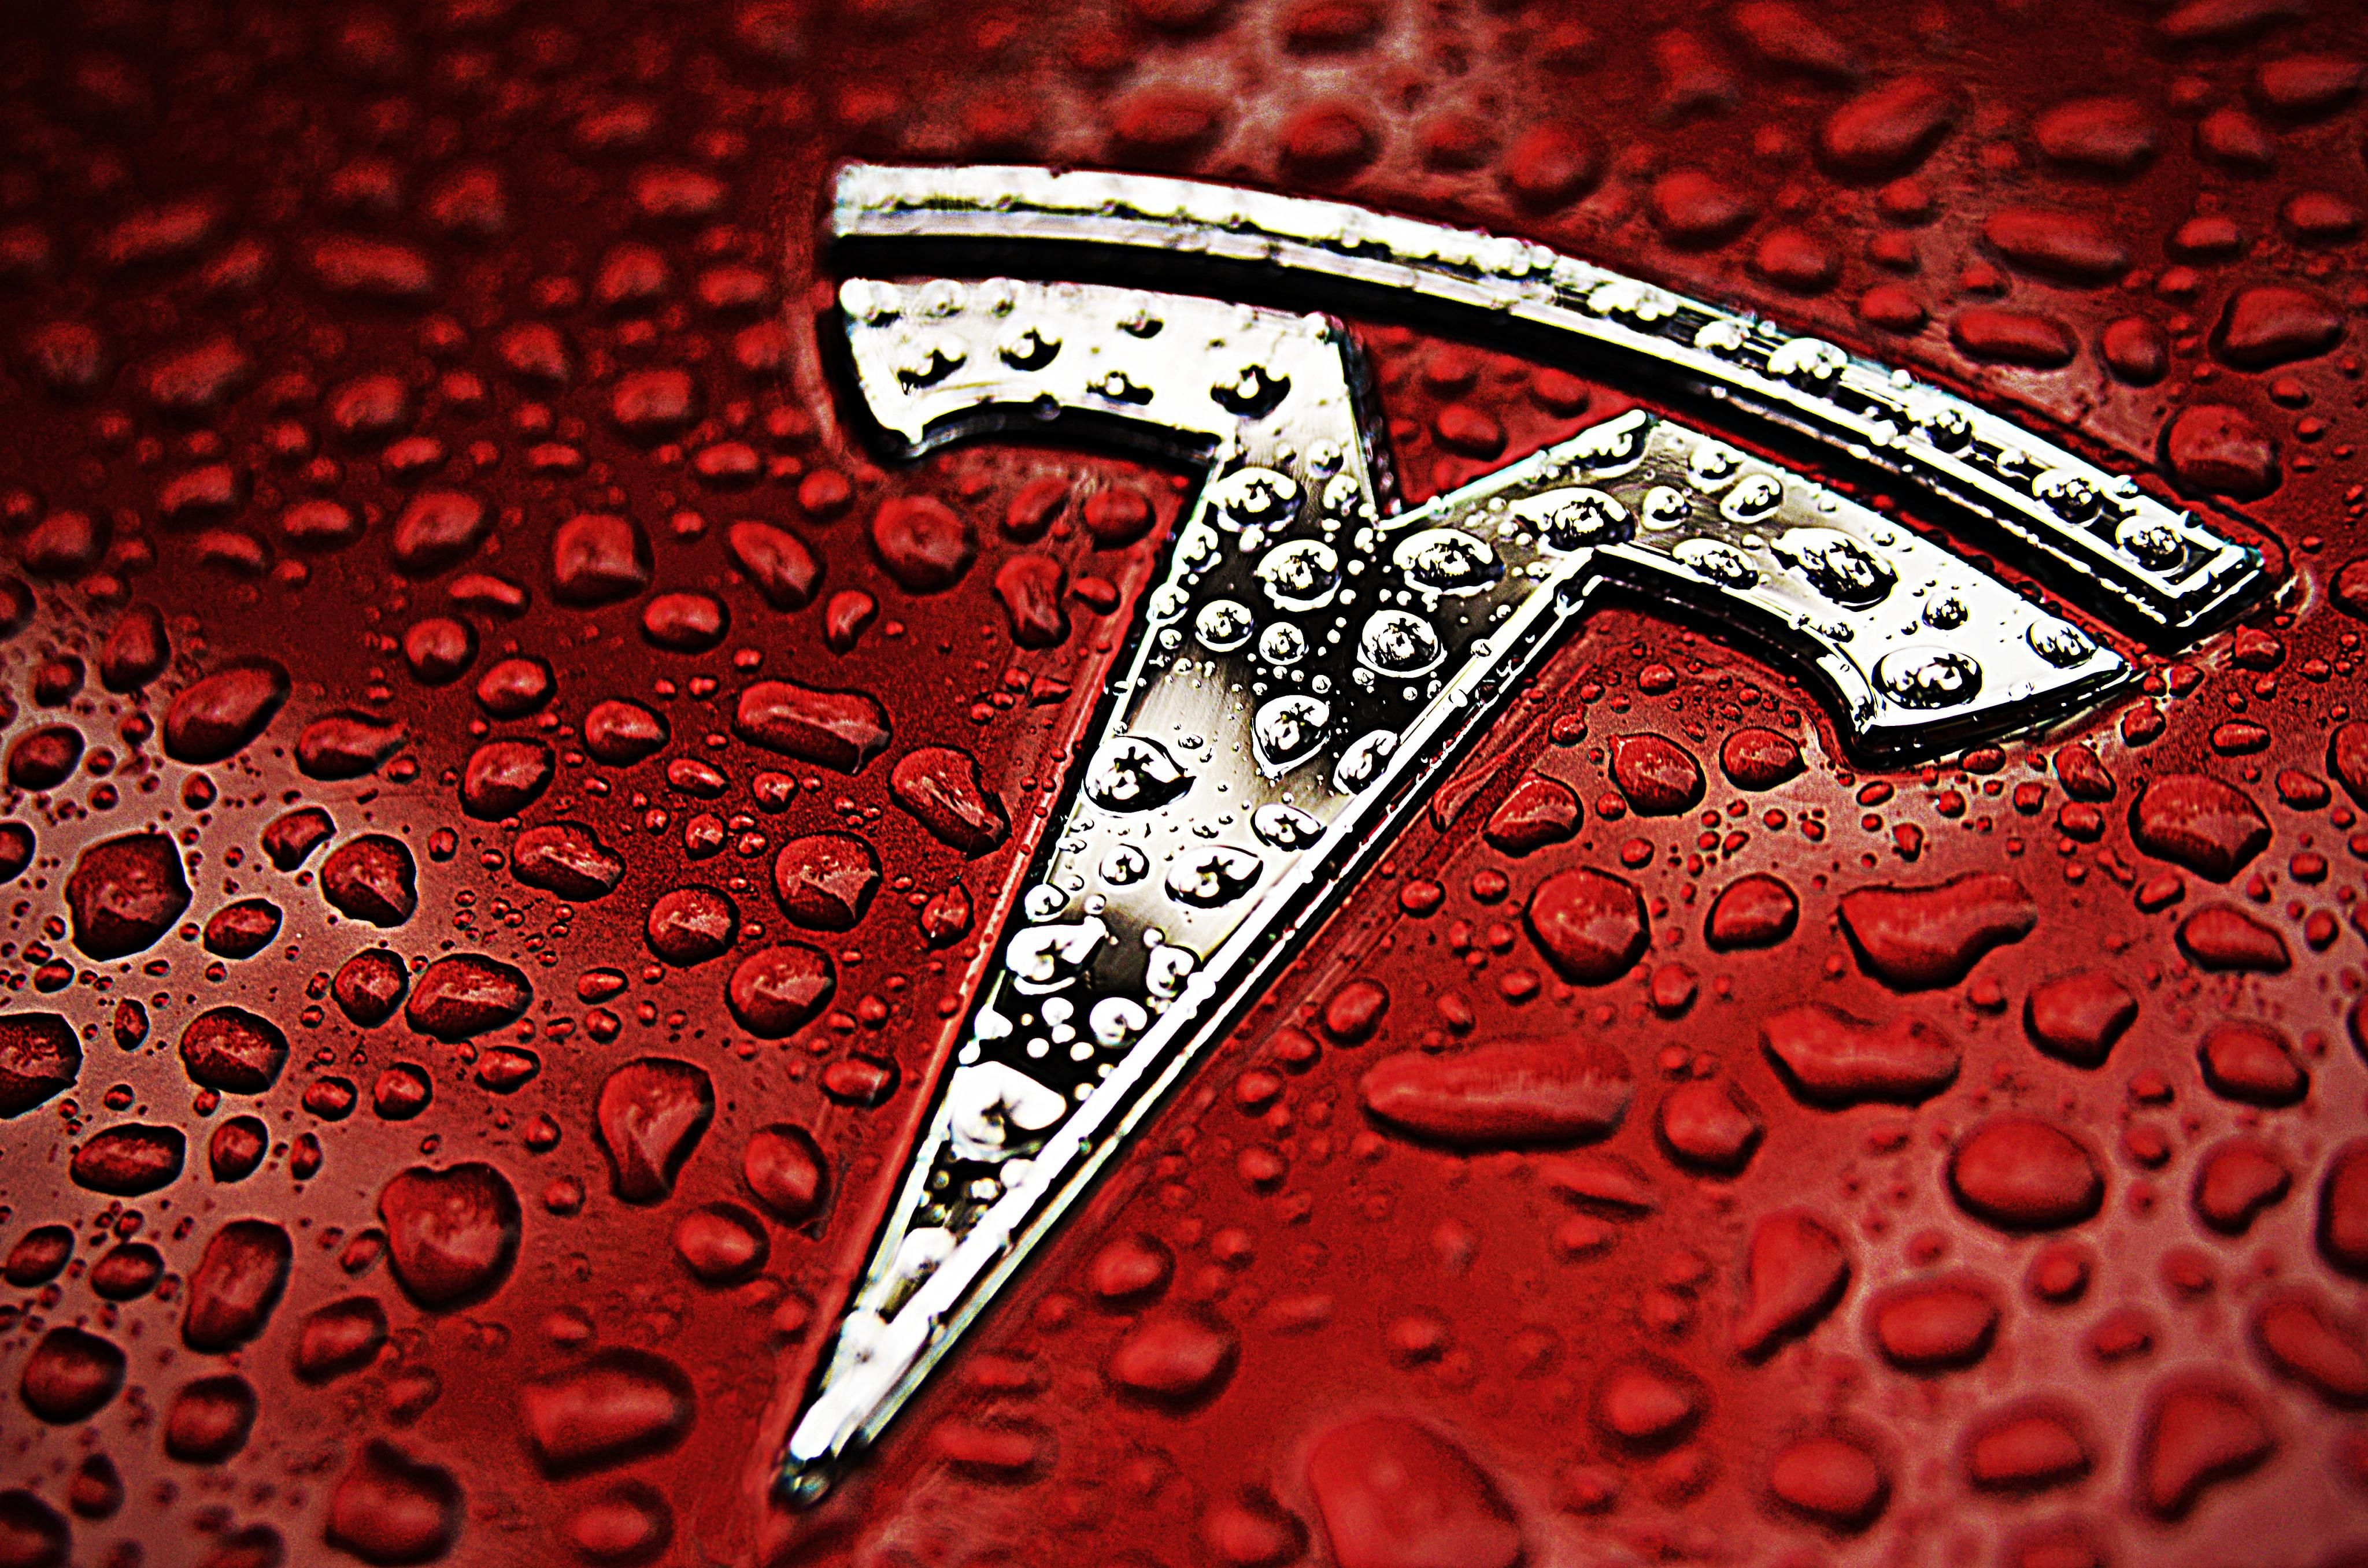 With the model S now making its way onto the streets with